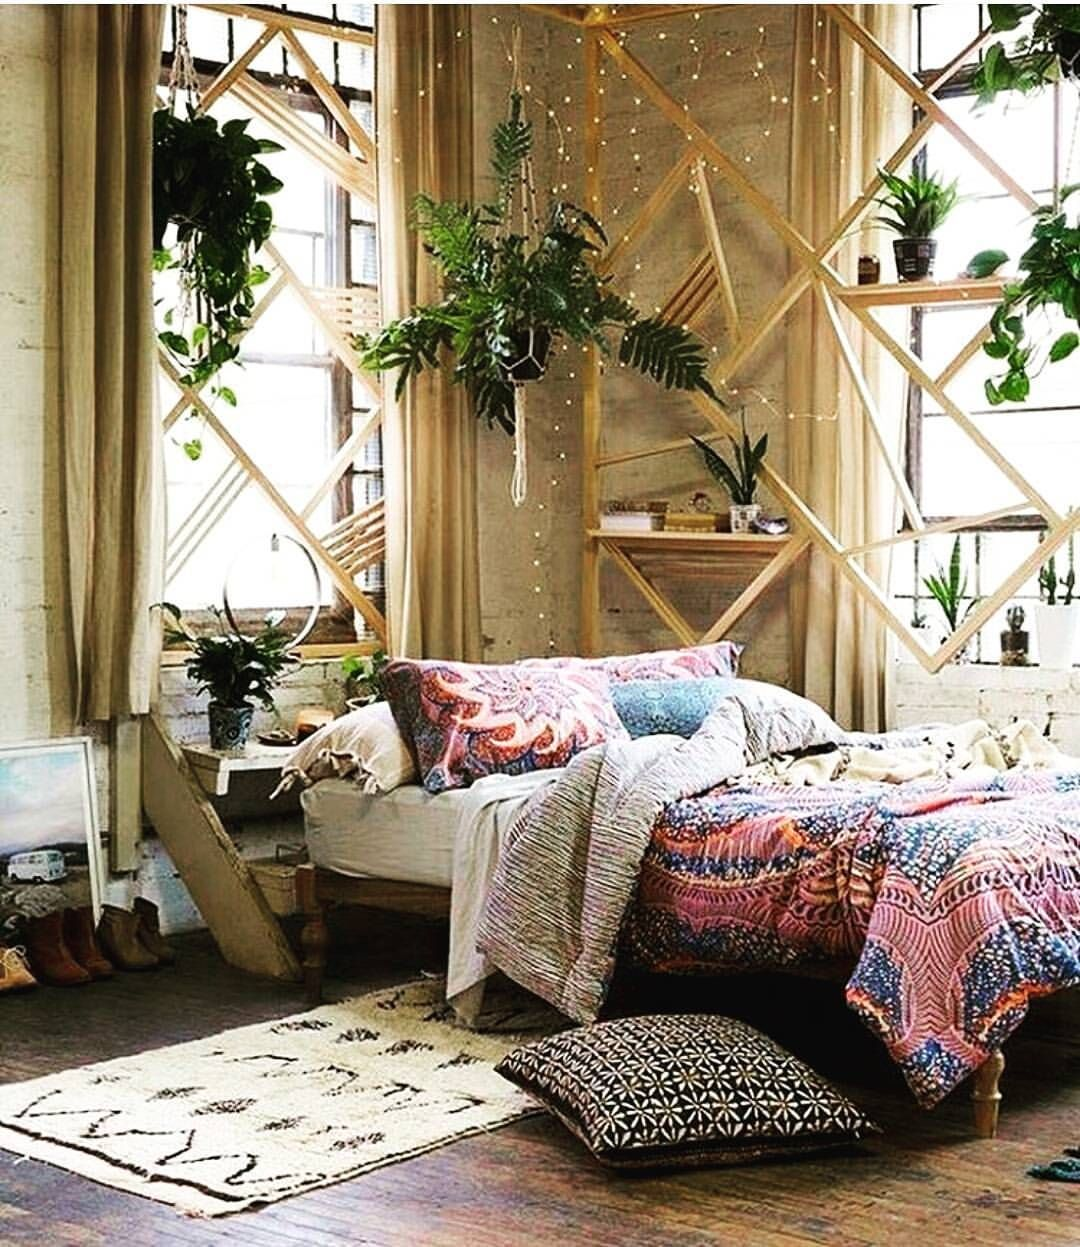 Bohemian Sofa Bed Firm Leather See This Instagram Photo By Hippie Sunflower  3 025